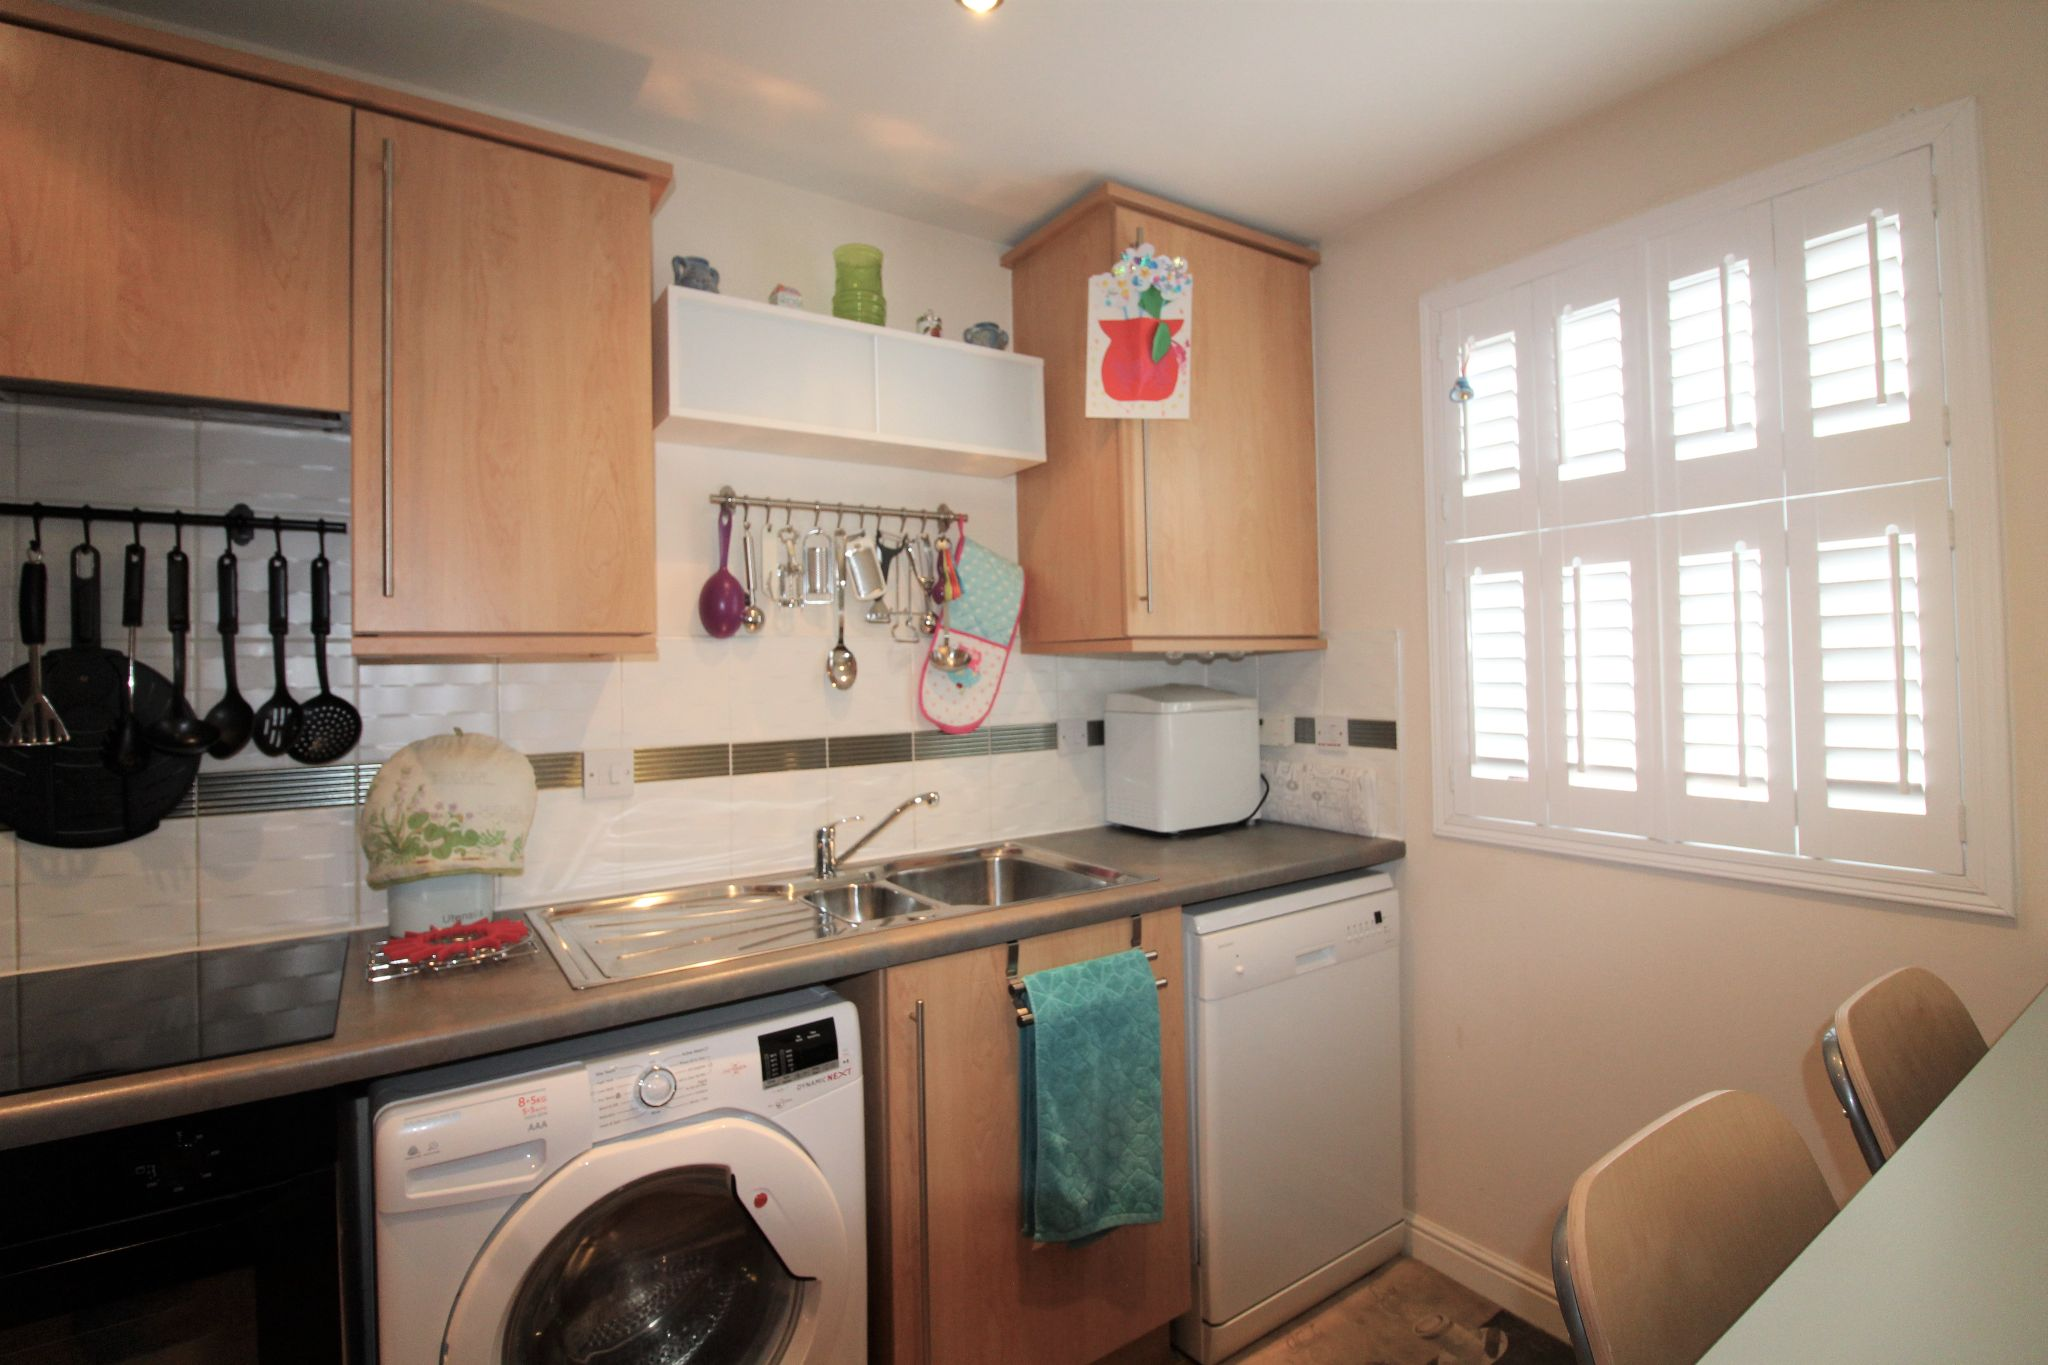 2 bedroom semi-detached house For Sale in Durham - Photograph 6.